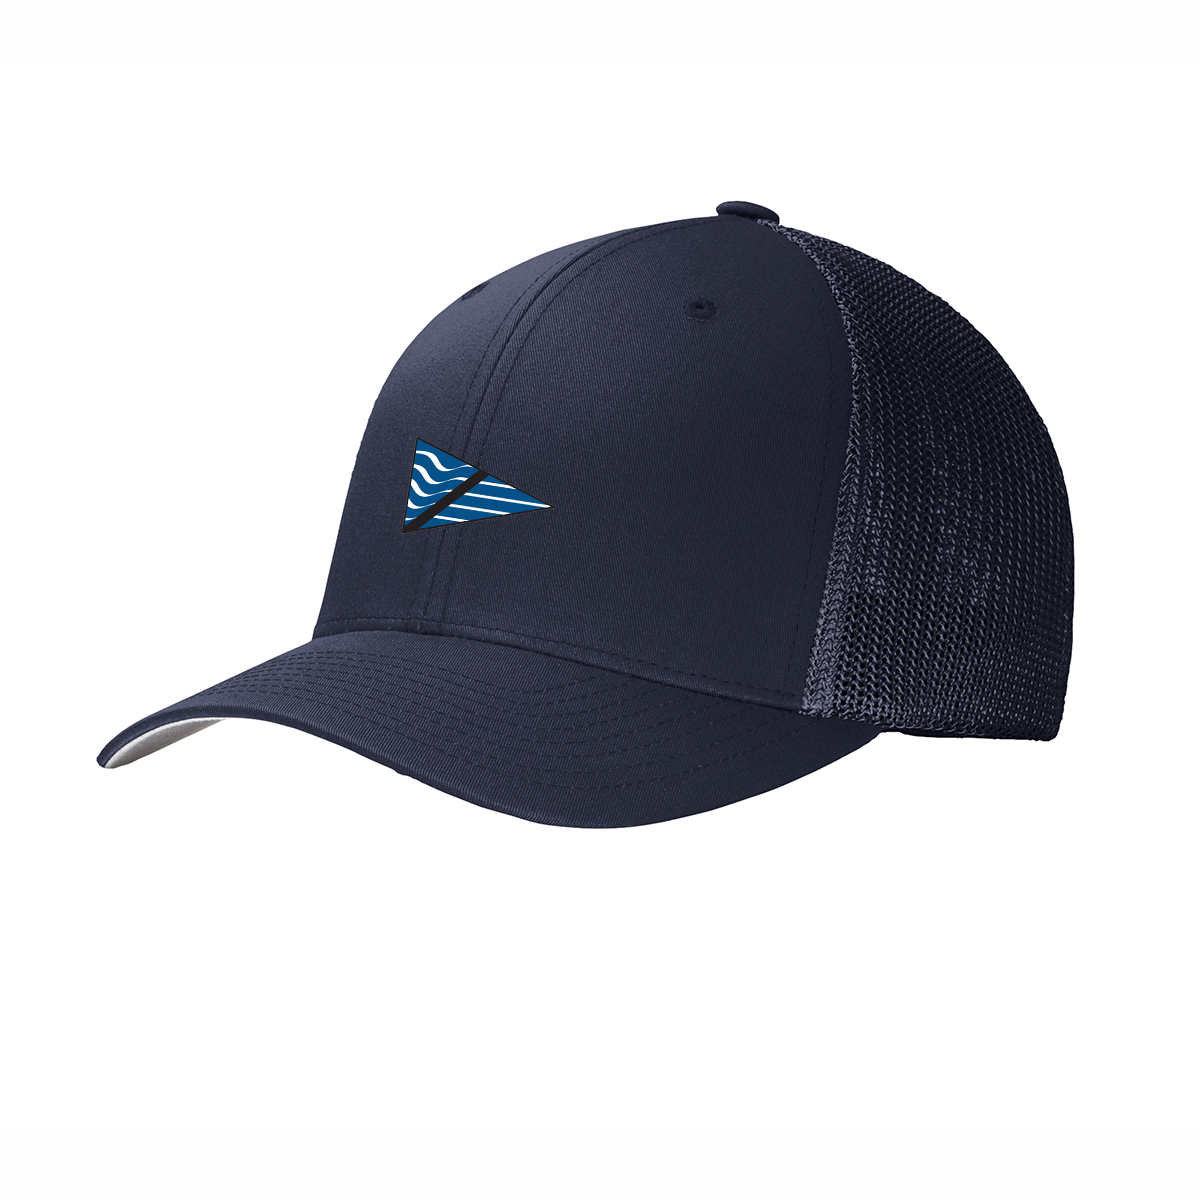 Breakwater Yacht Club - Trucker Hat